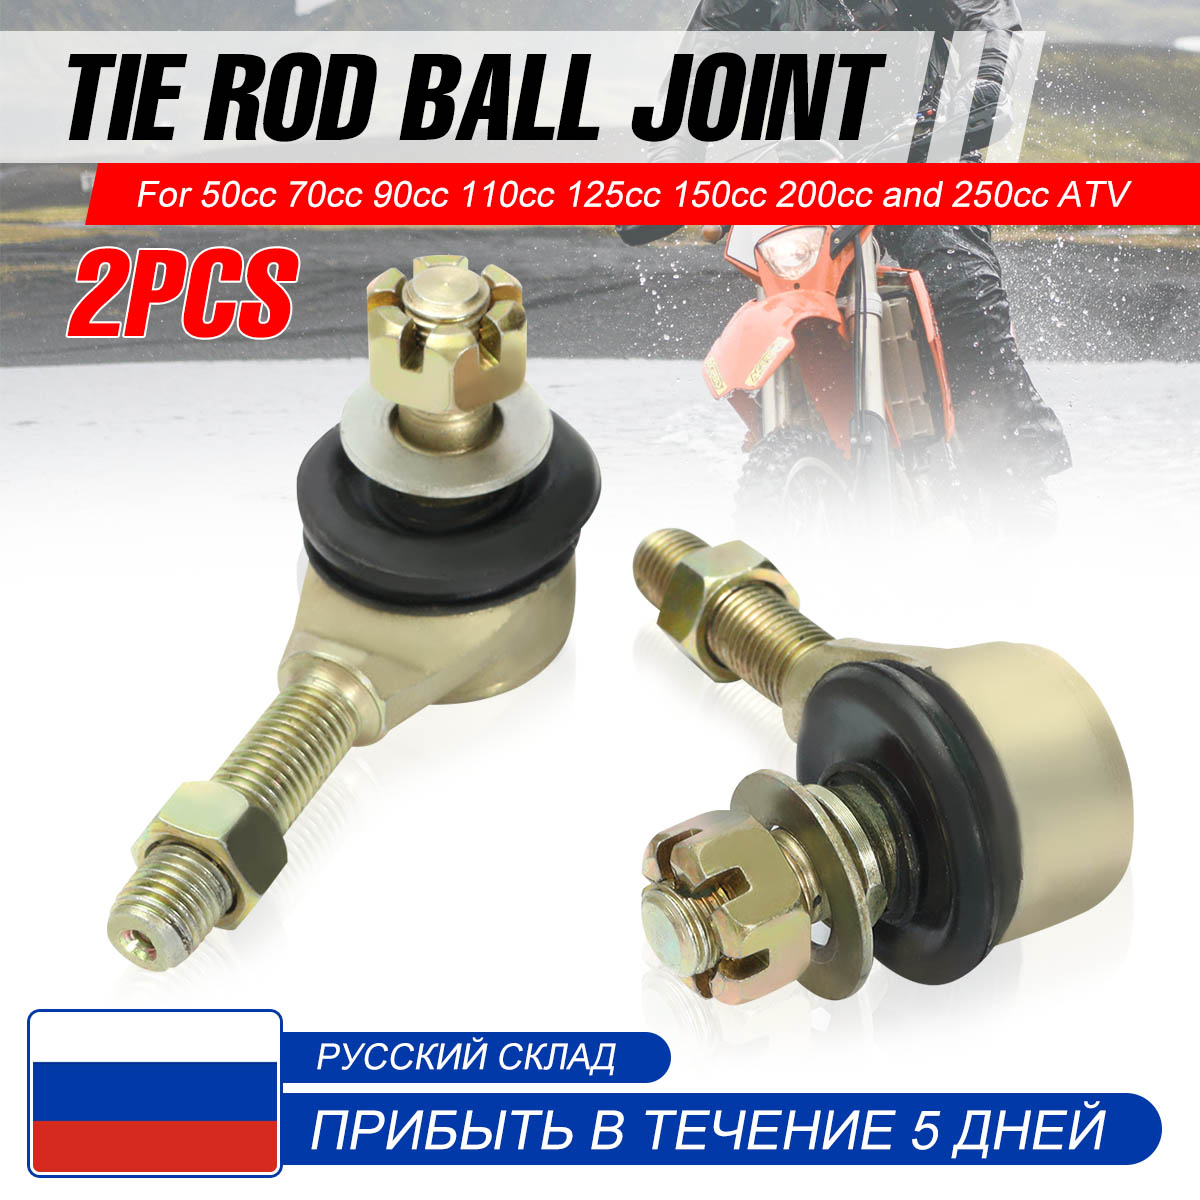 2X 10mm M10 Tie Rod End Kits Ball Joint For 50cc 70cc 90cc 110cc 125cc 150cc 200cc 250cc 300cc ATV Karting Quad Bike 4-wheeler